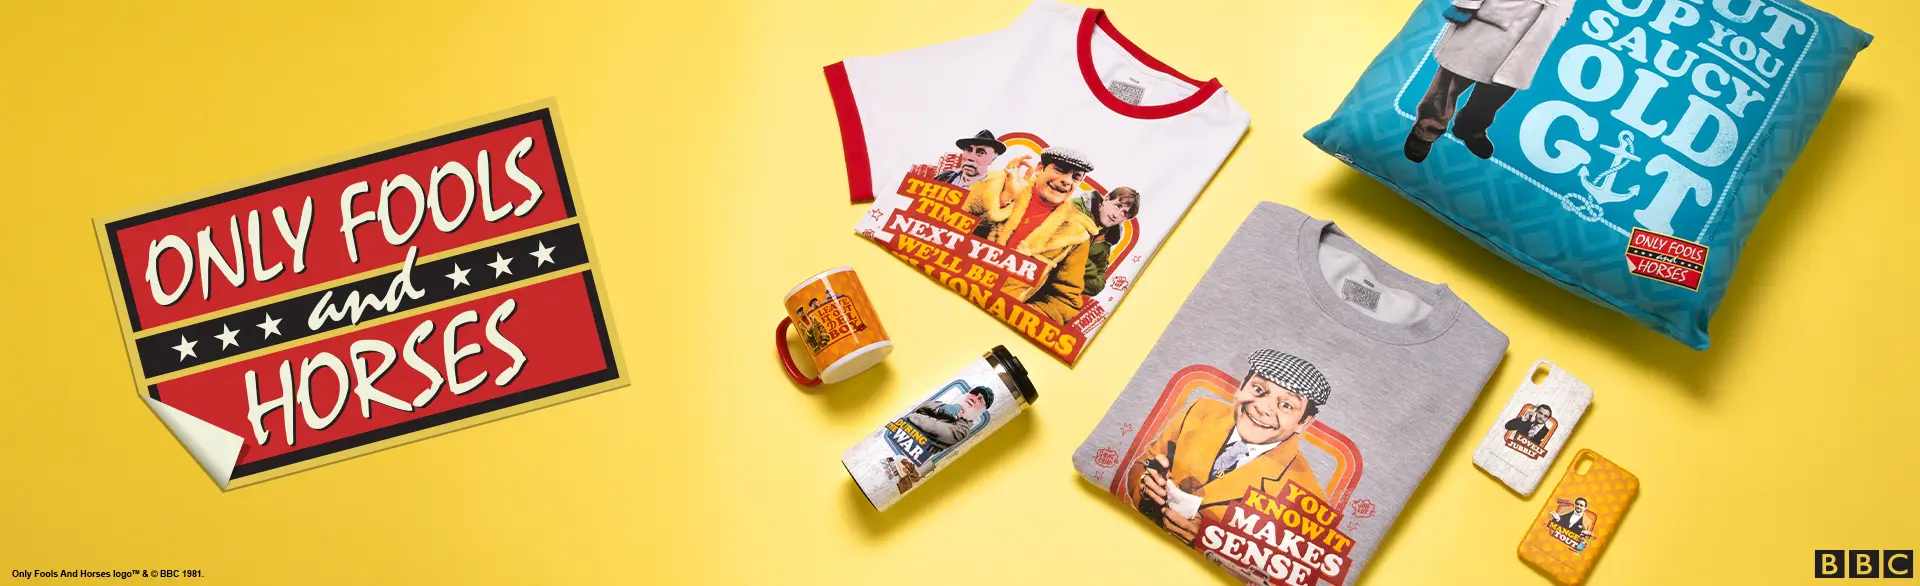 only fools and horses gifts